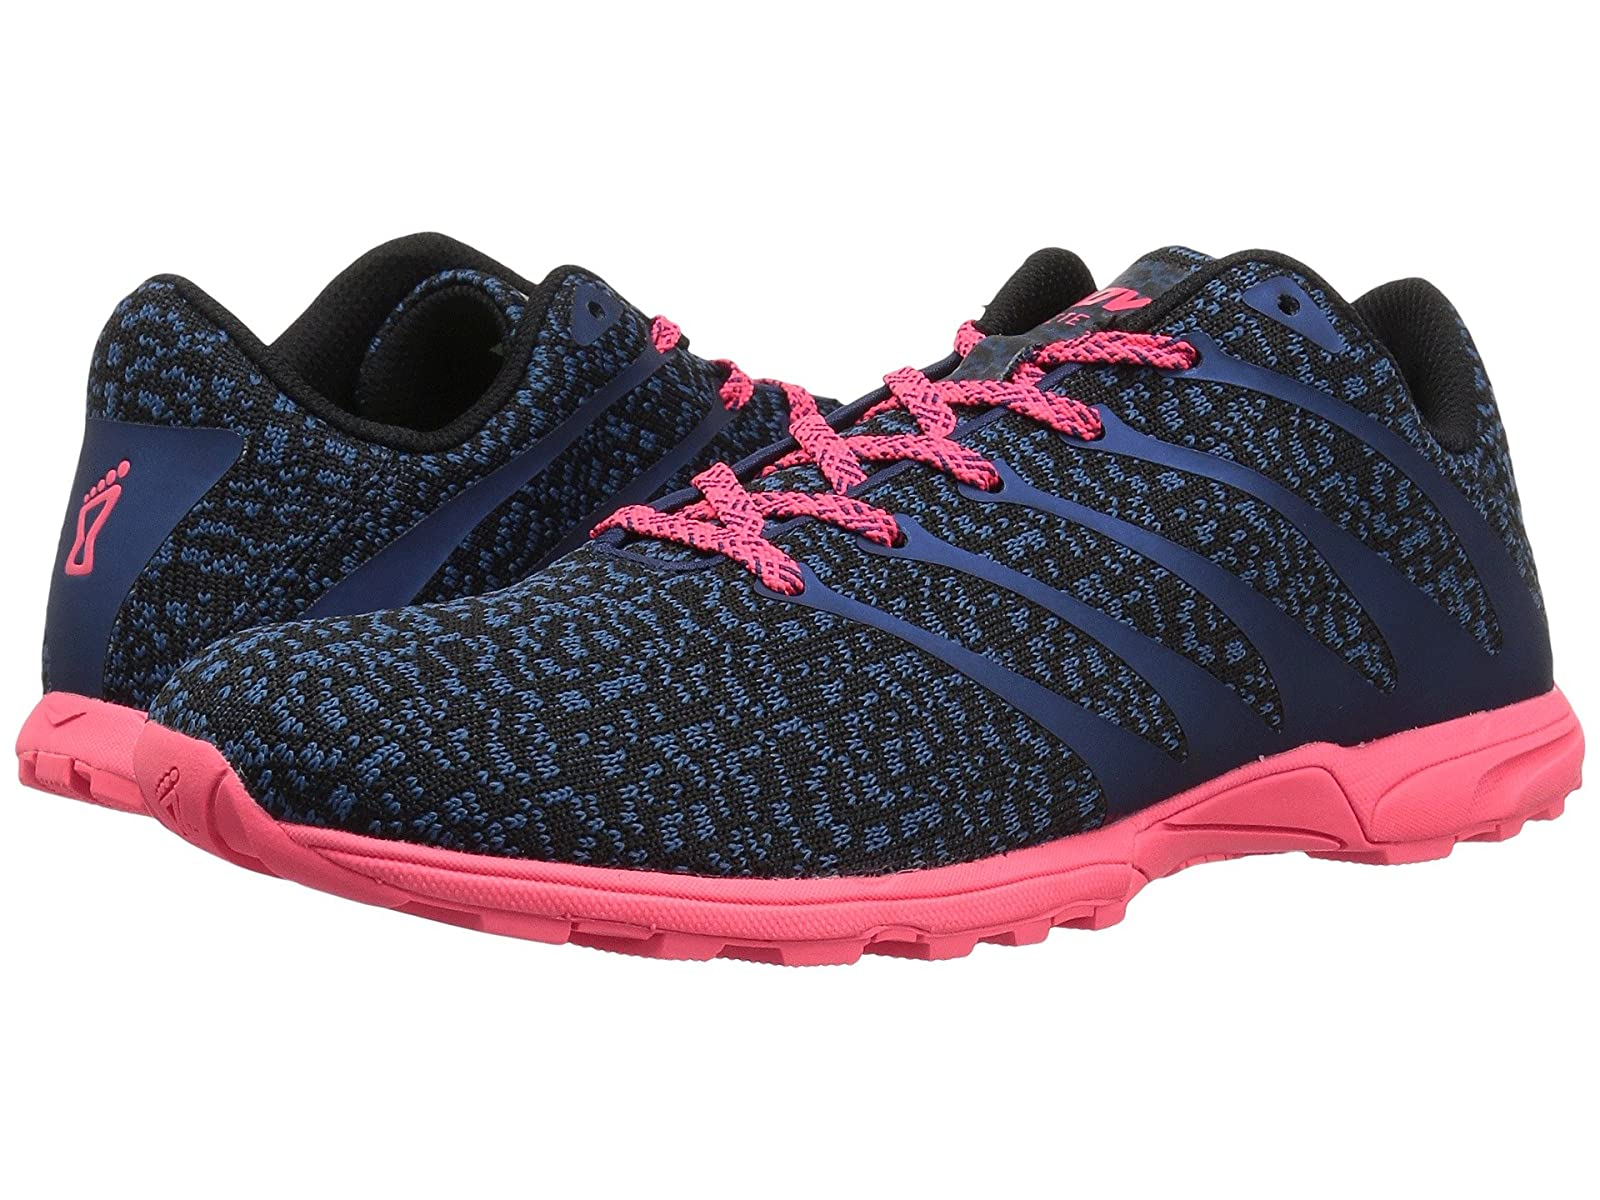 inov-8 F-Lite 195 CLAtmospheric grades have affordable shoes